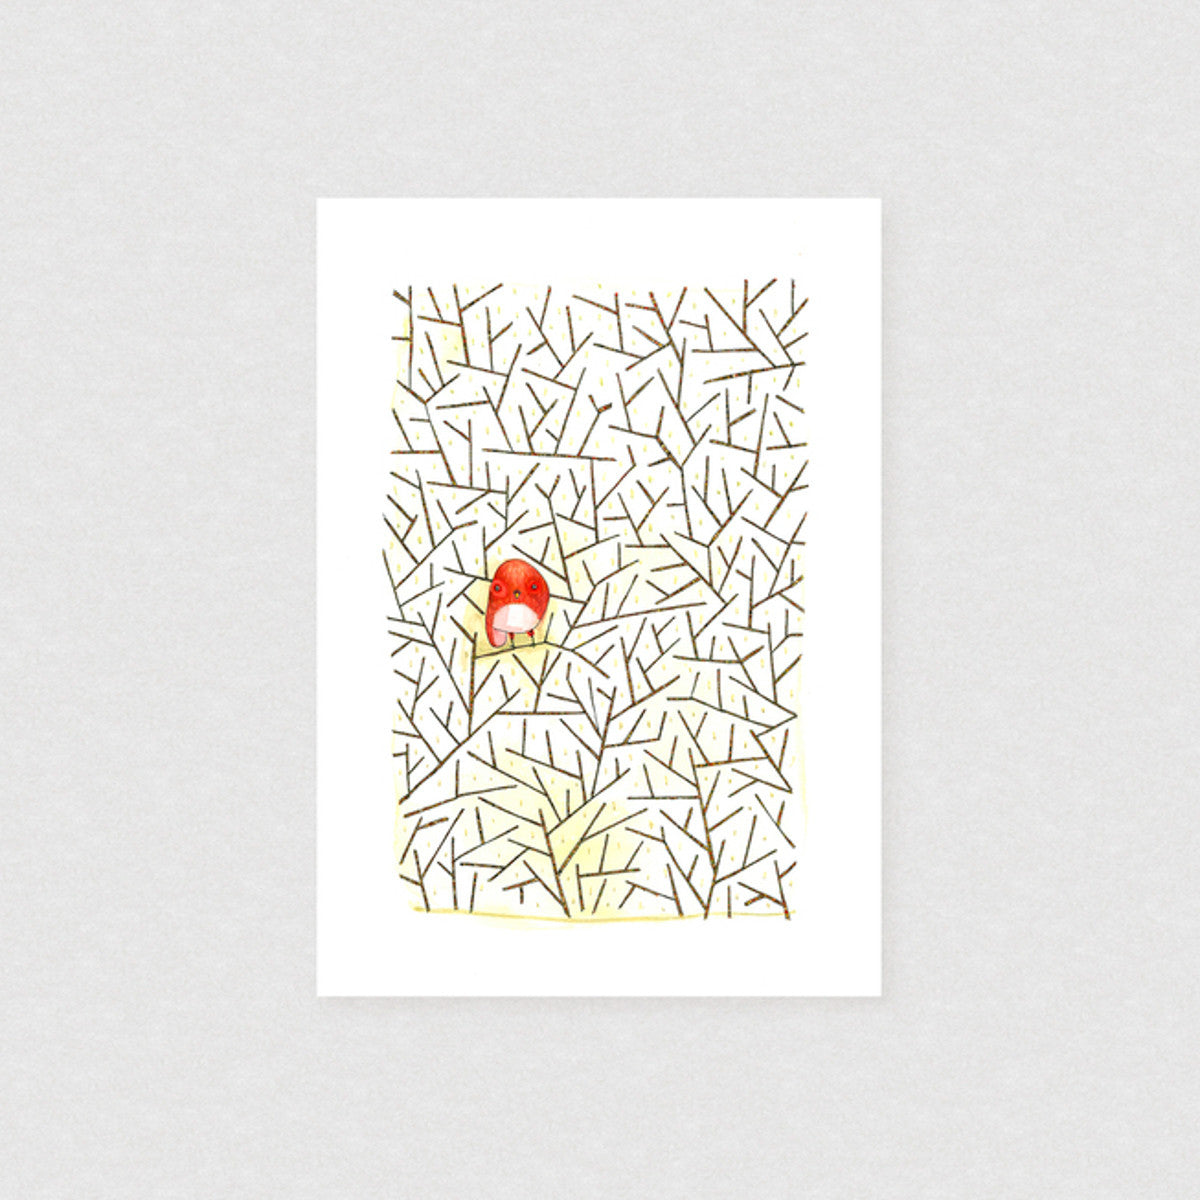 Lonely Guy - Limited Edition Print | by Natalie Martin - Unframed Prints - Throw Some Seeds - Australian gardening gifts and eco products online!